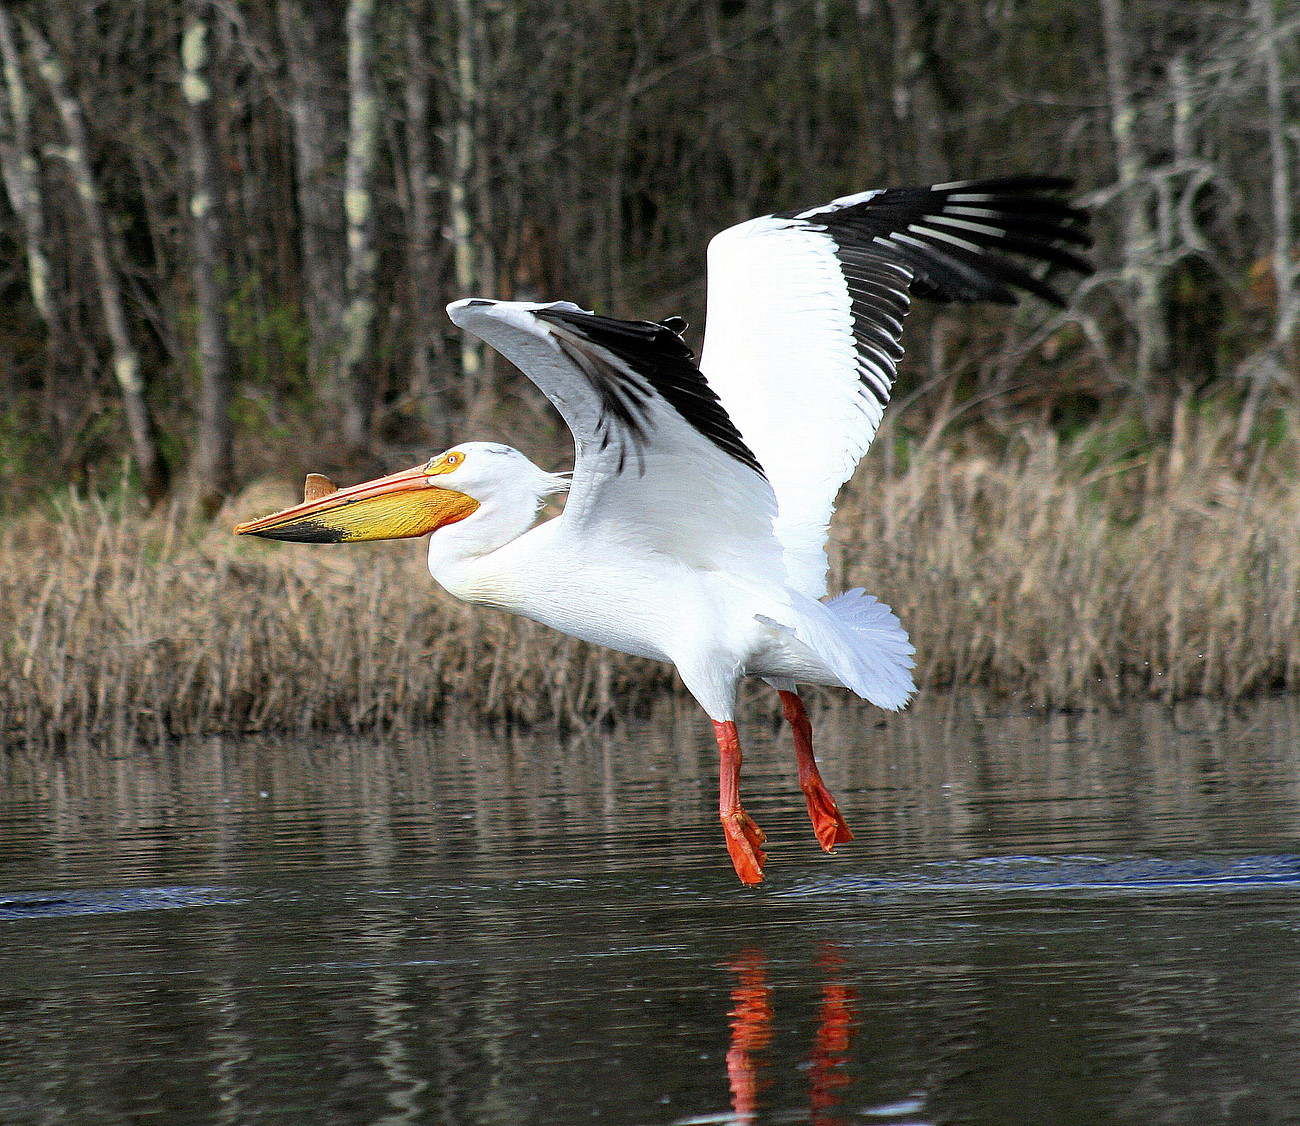 pelican taking flight author pluskwik paul